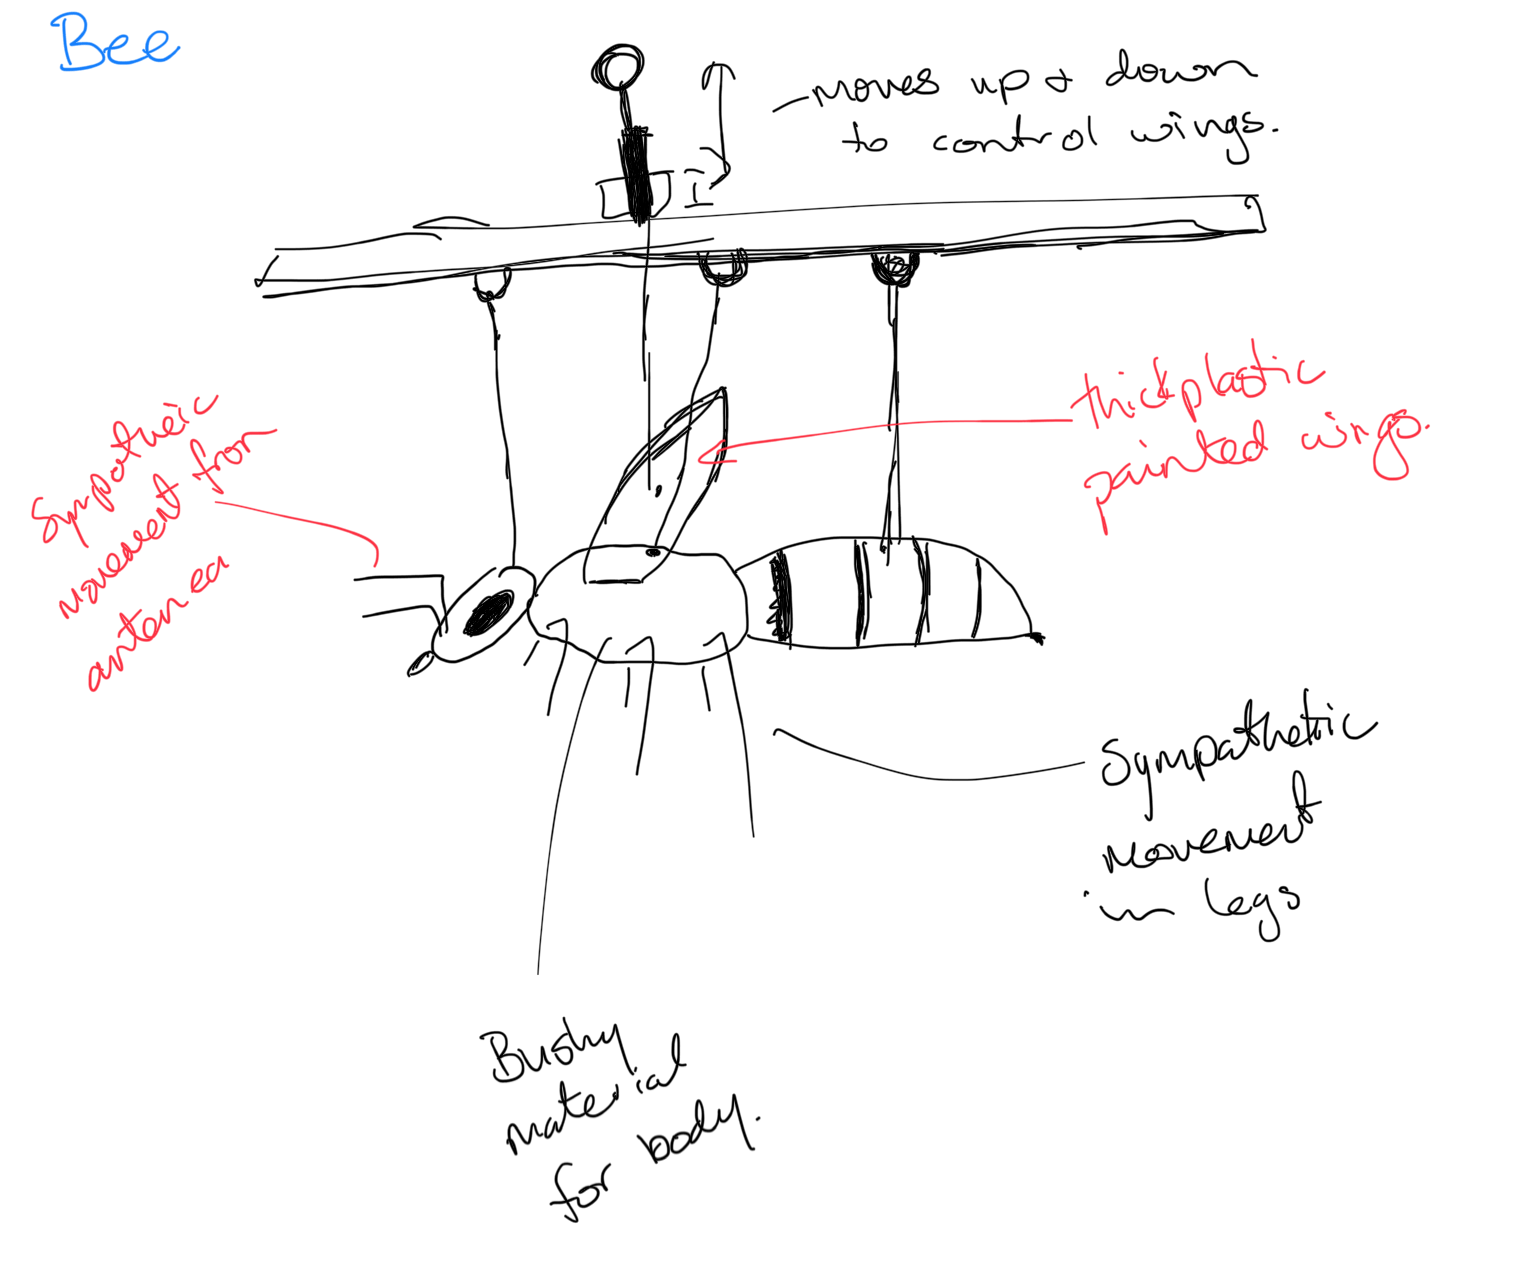 My design for a marionette bee